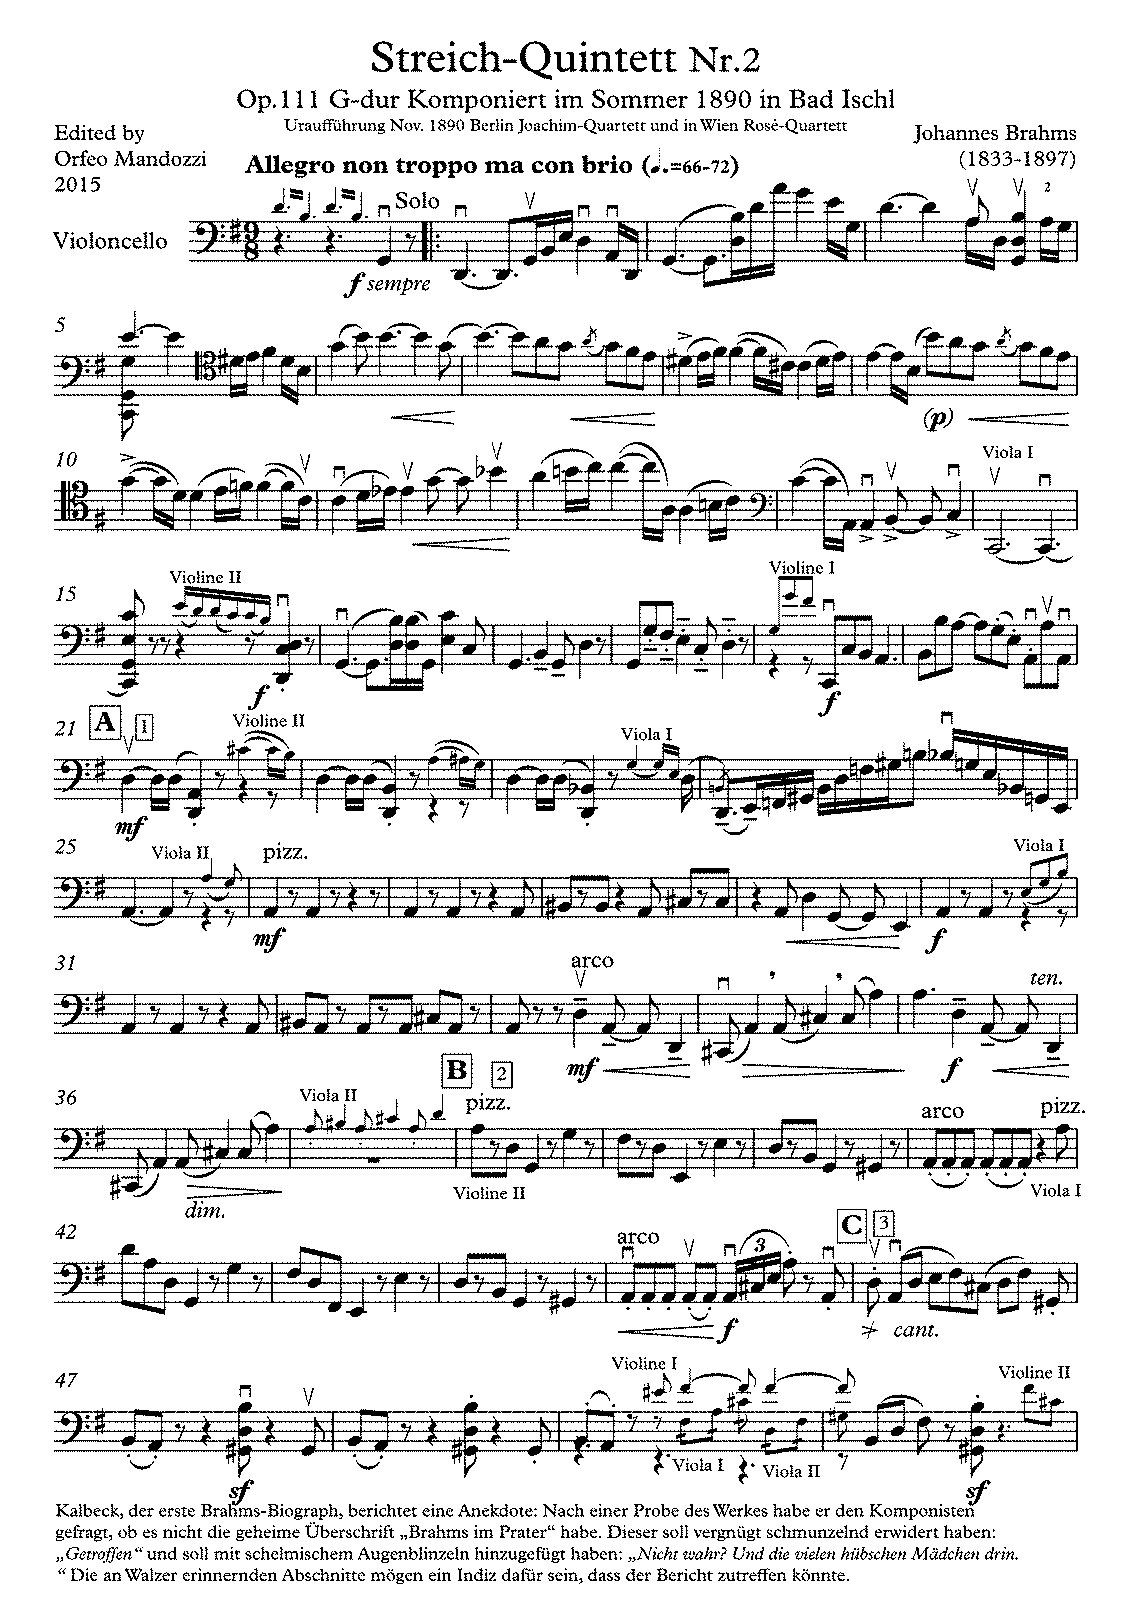 PMLP44293-Brahms Op 111 Cello Mandozzi Cello 1 Mouv.pdf